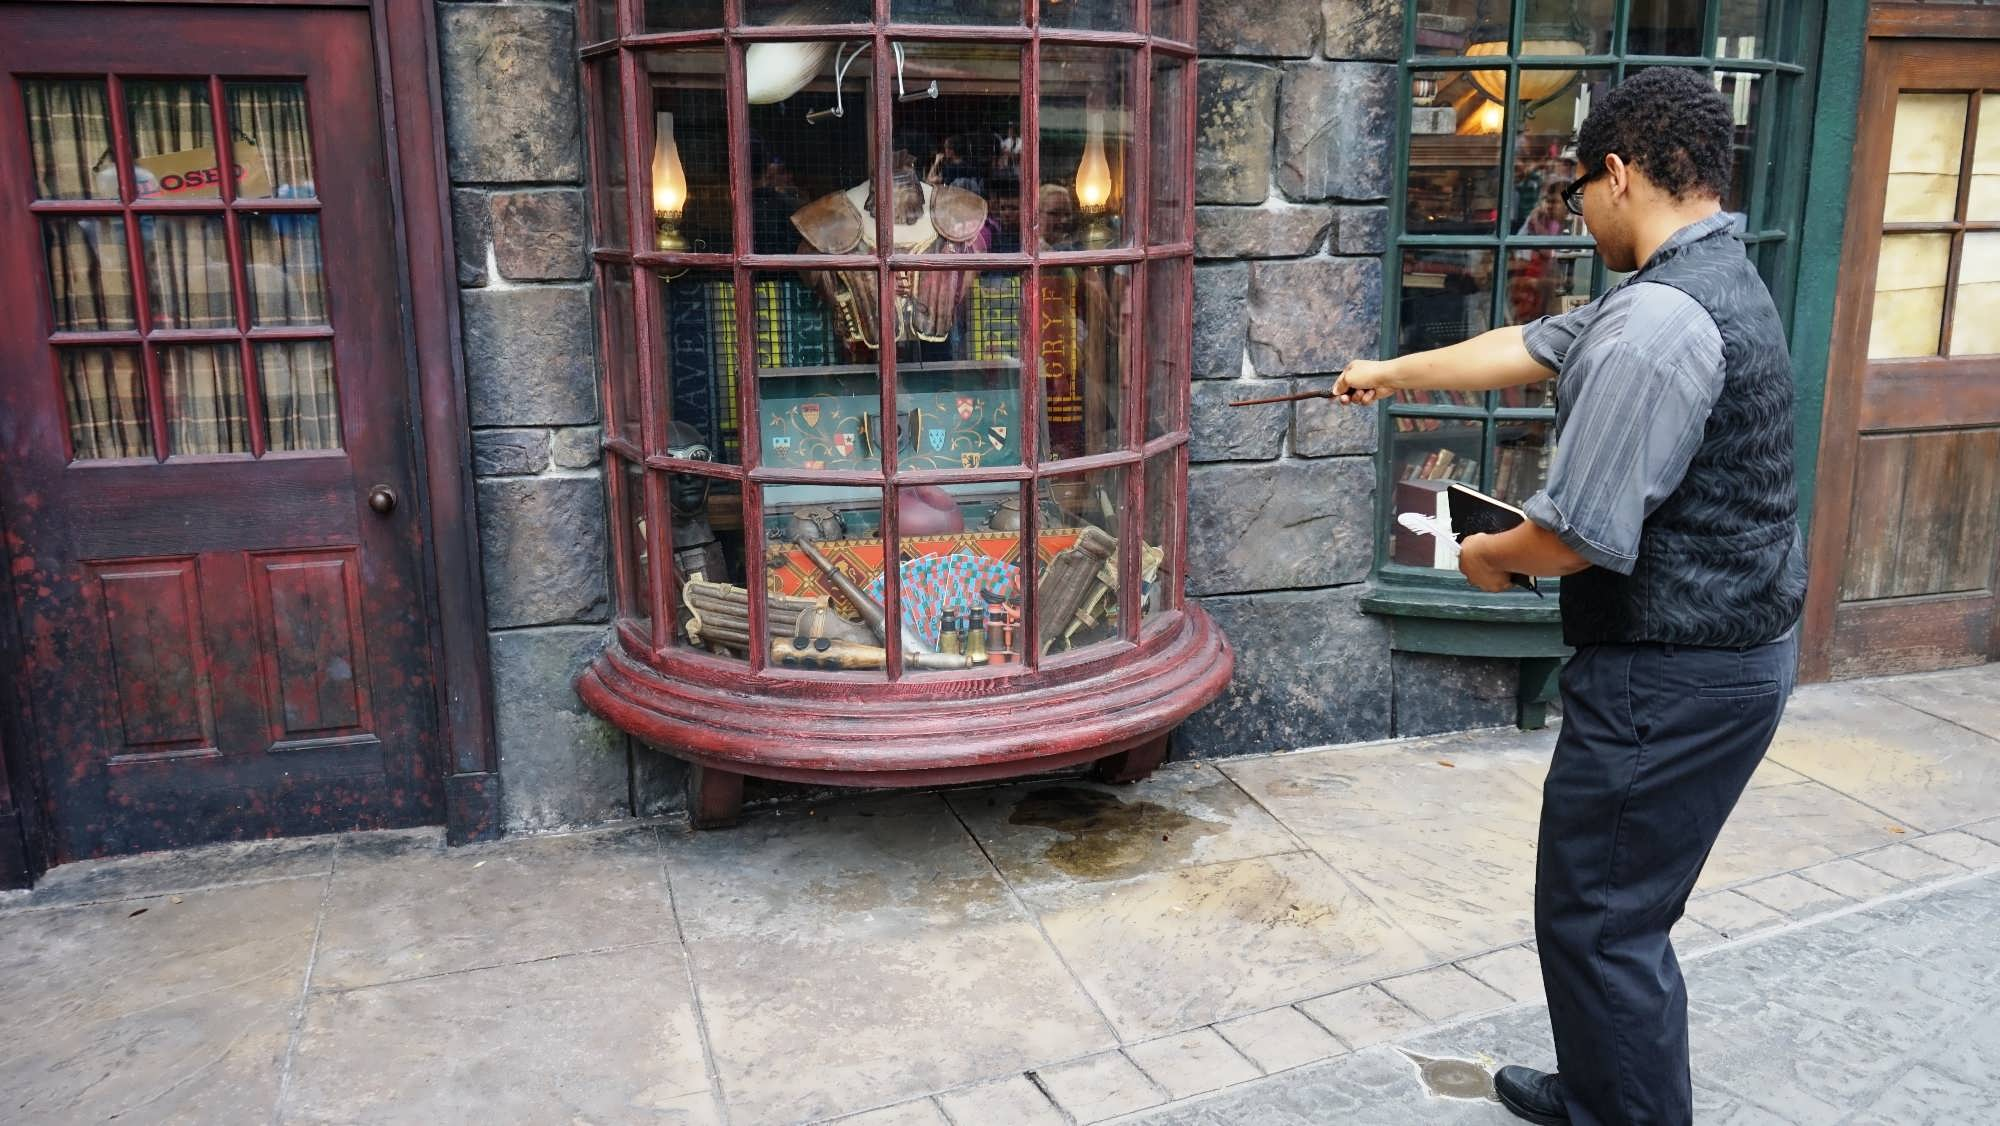 Interactive wands & spell-casting in the Wizarding World - complete